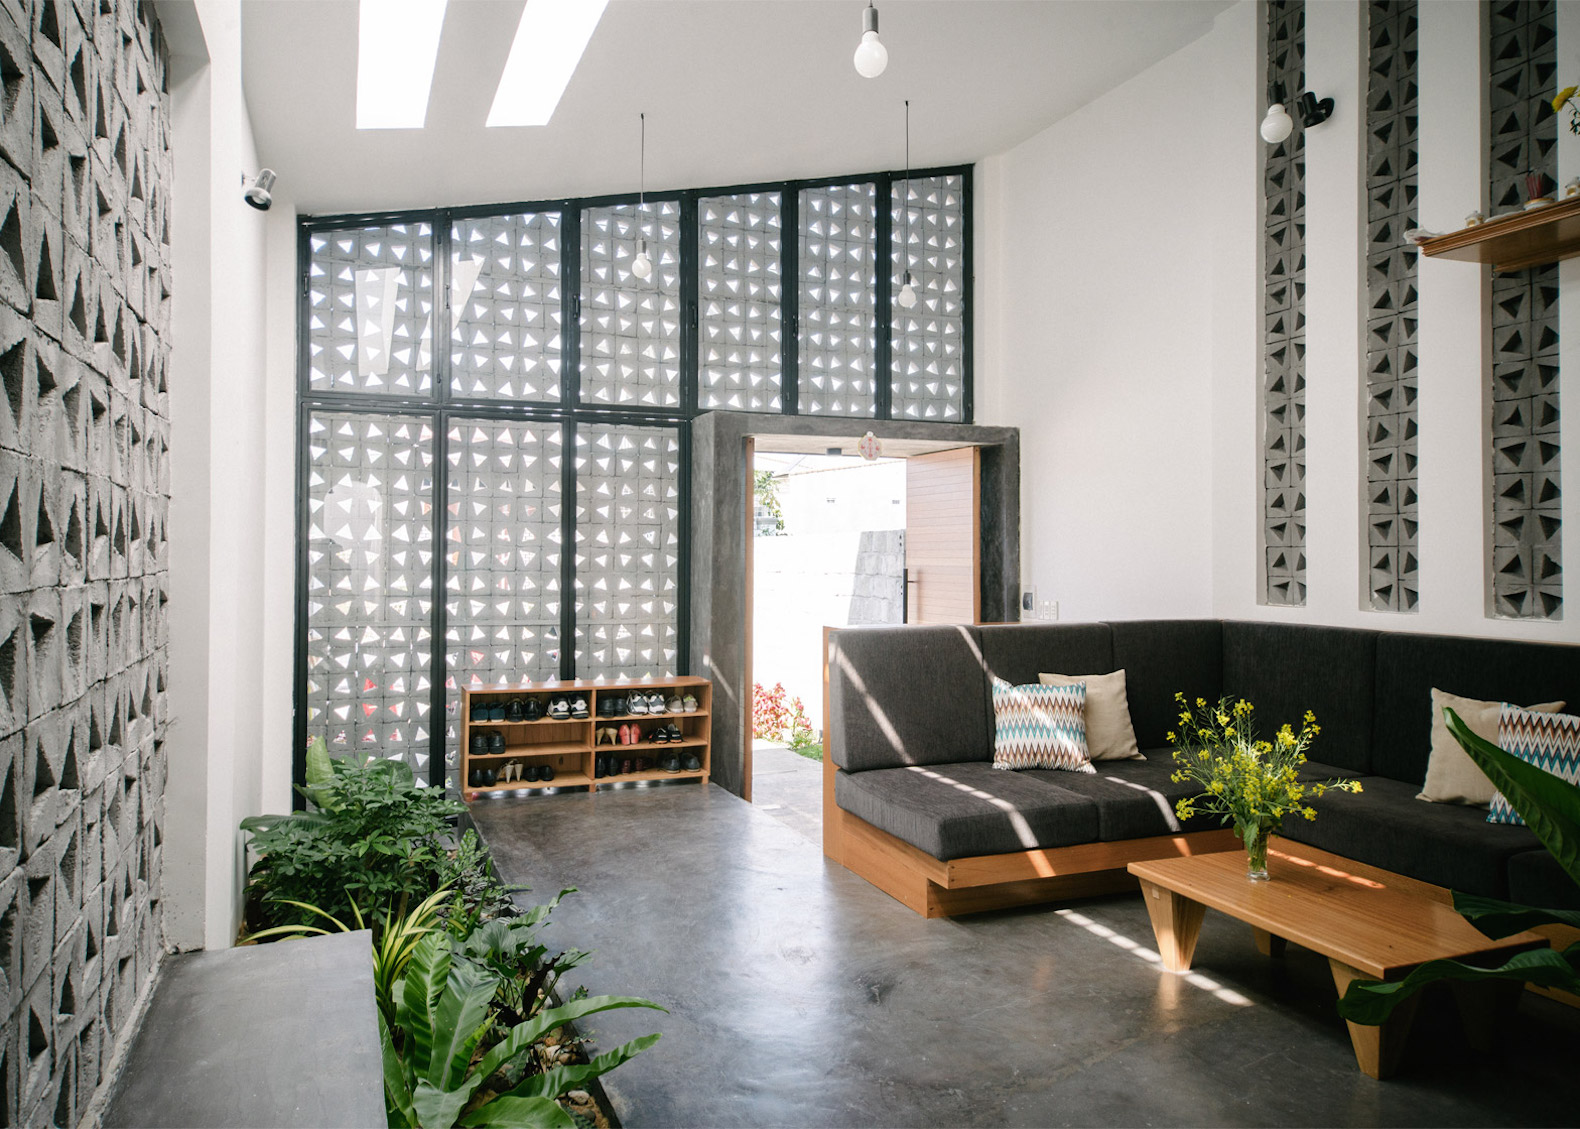 low cost perforated home in vietnam shows off the charms of